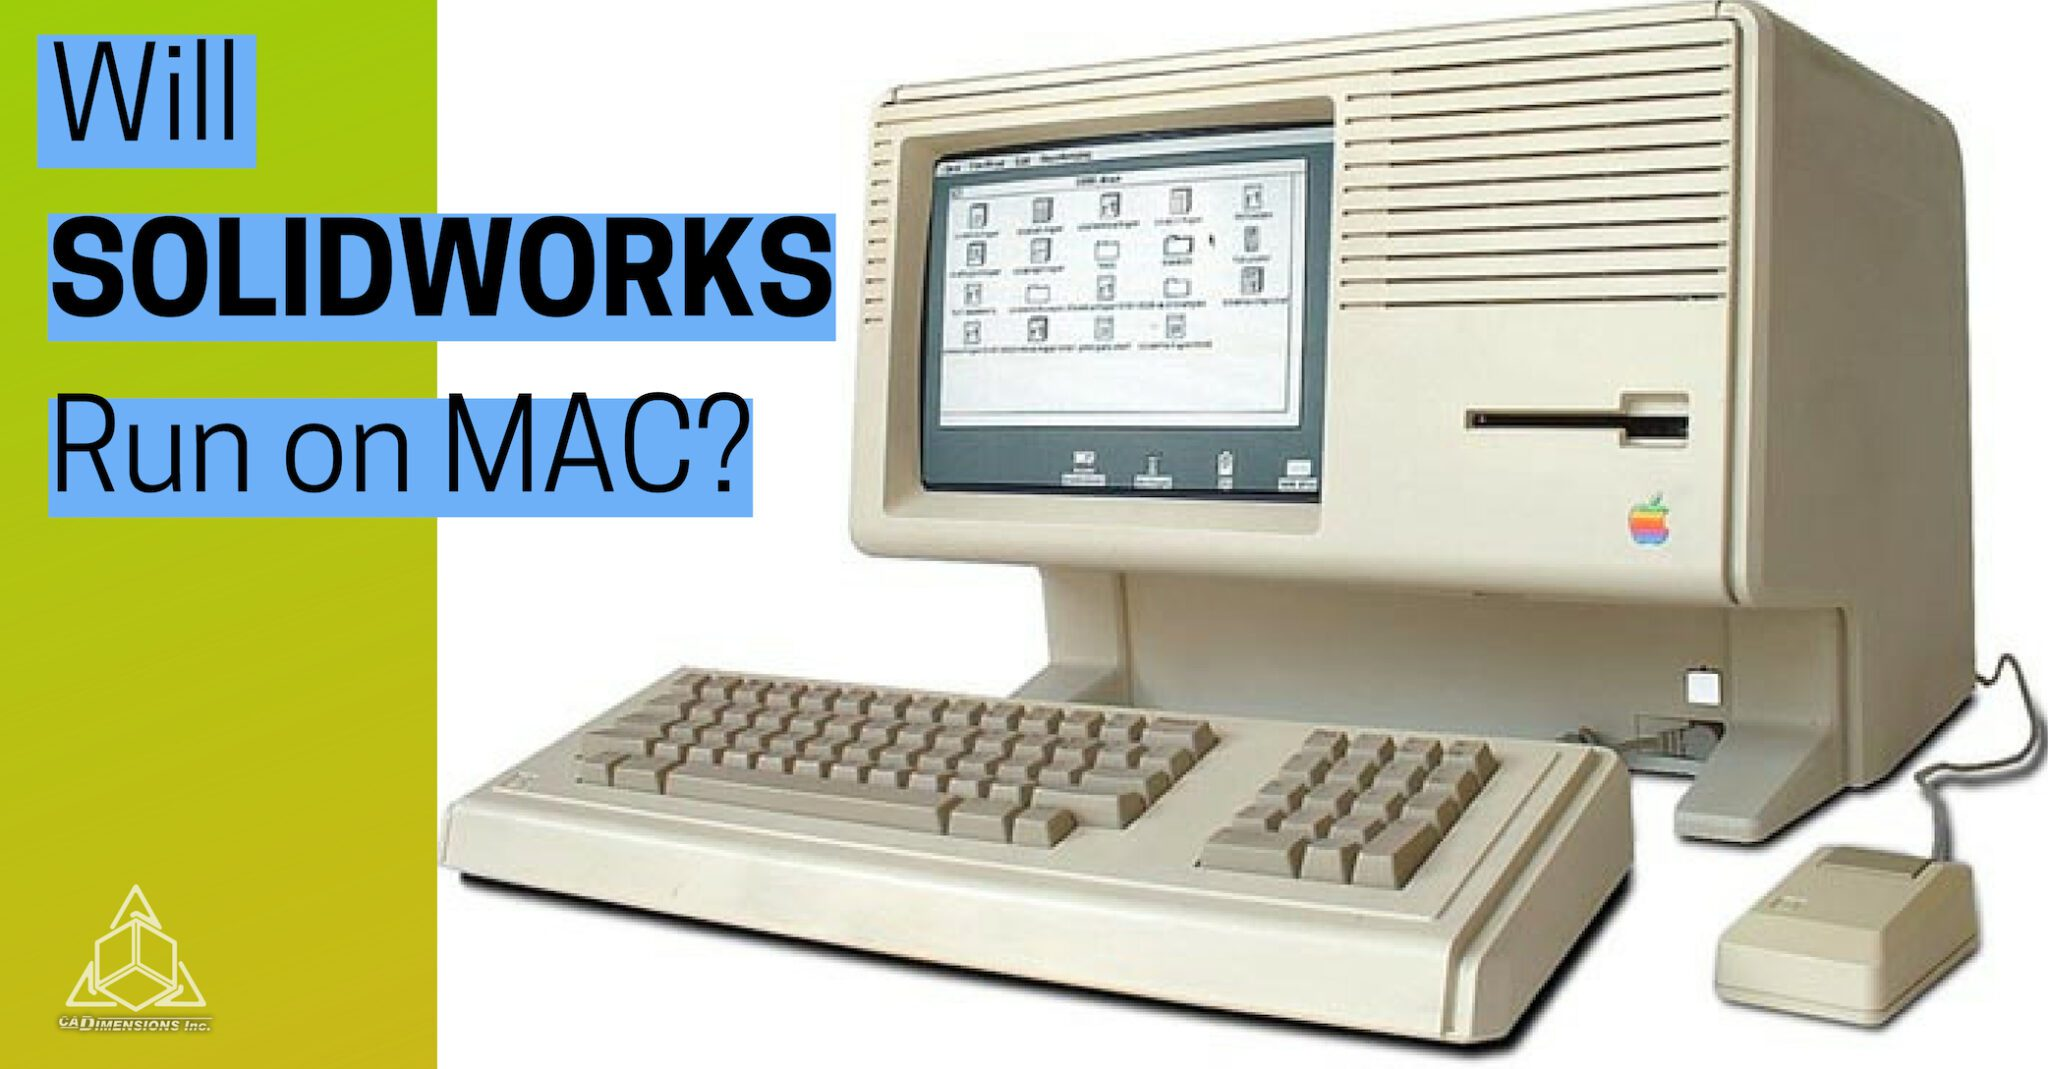 Is there a Solidworks for Mac?